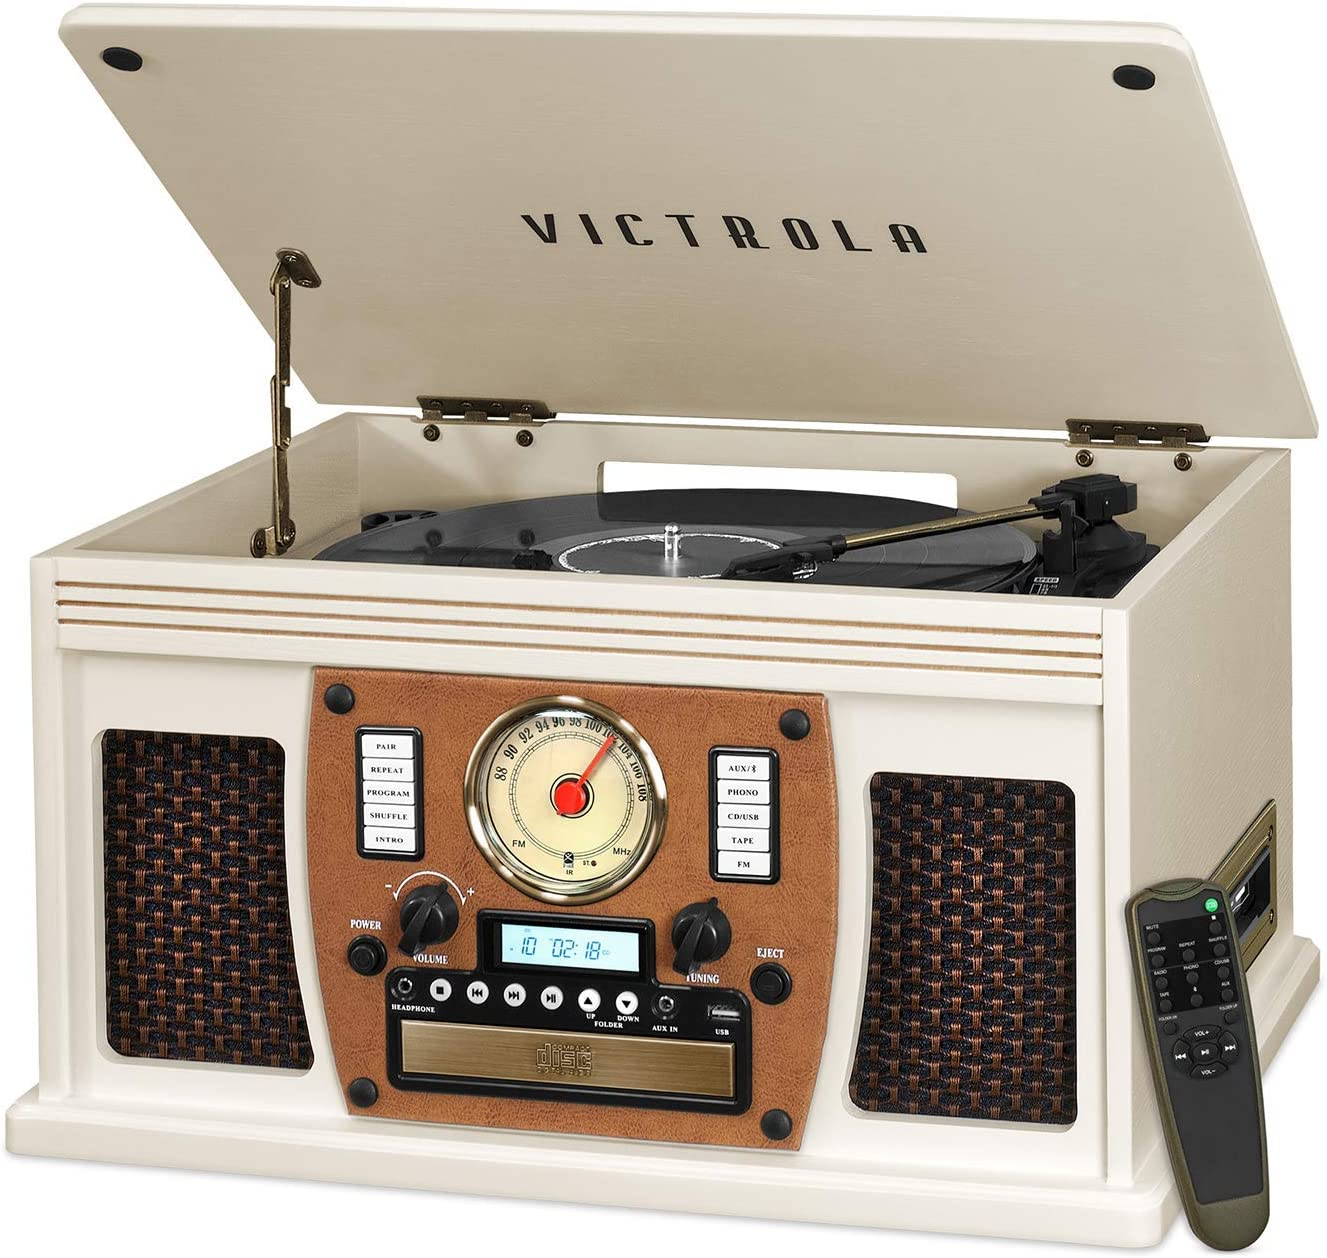 Victrola 8-in-1 Bluetooth Record Player & Multimedia Center, Built-in Stereo Speakers - Turntable, Wireless Music Streaming | White